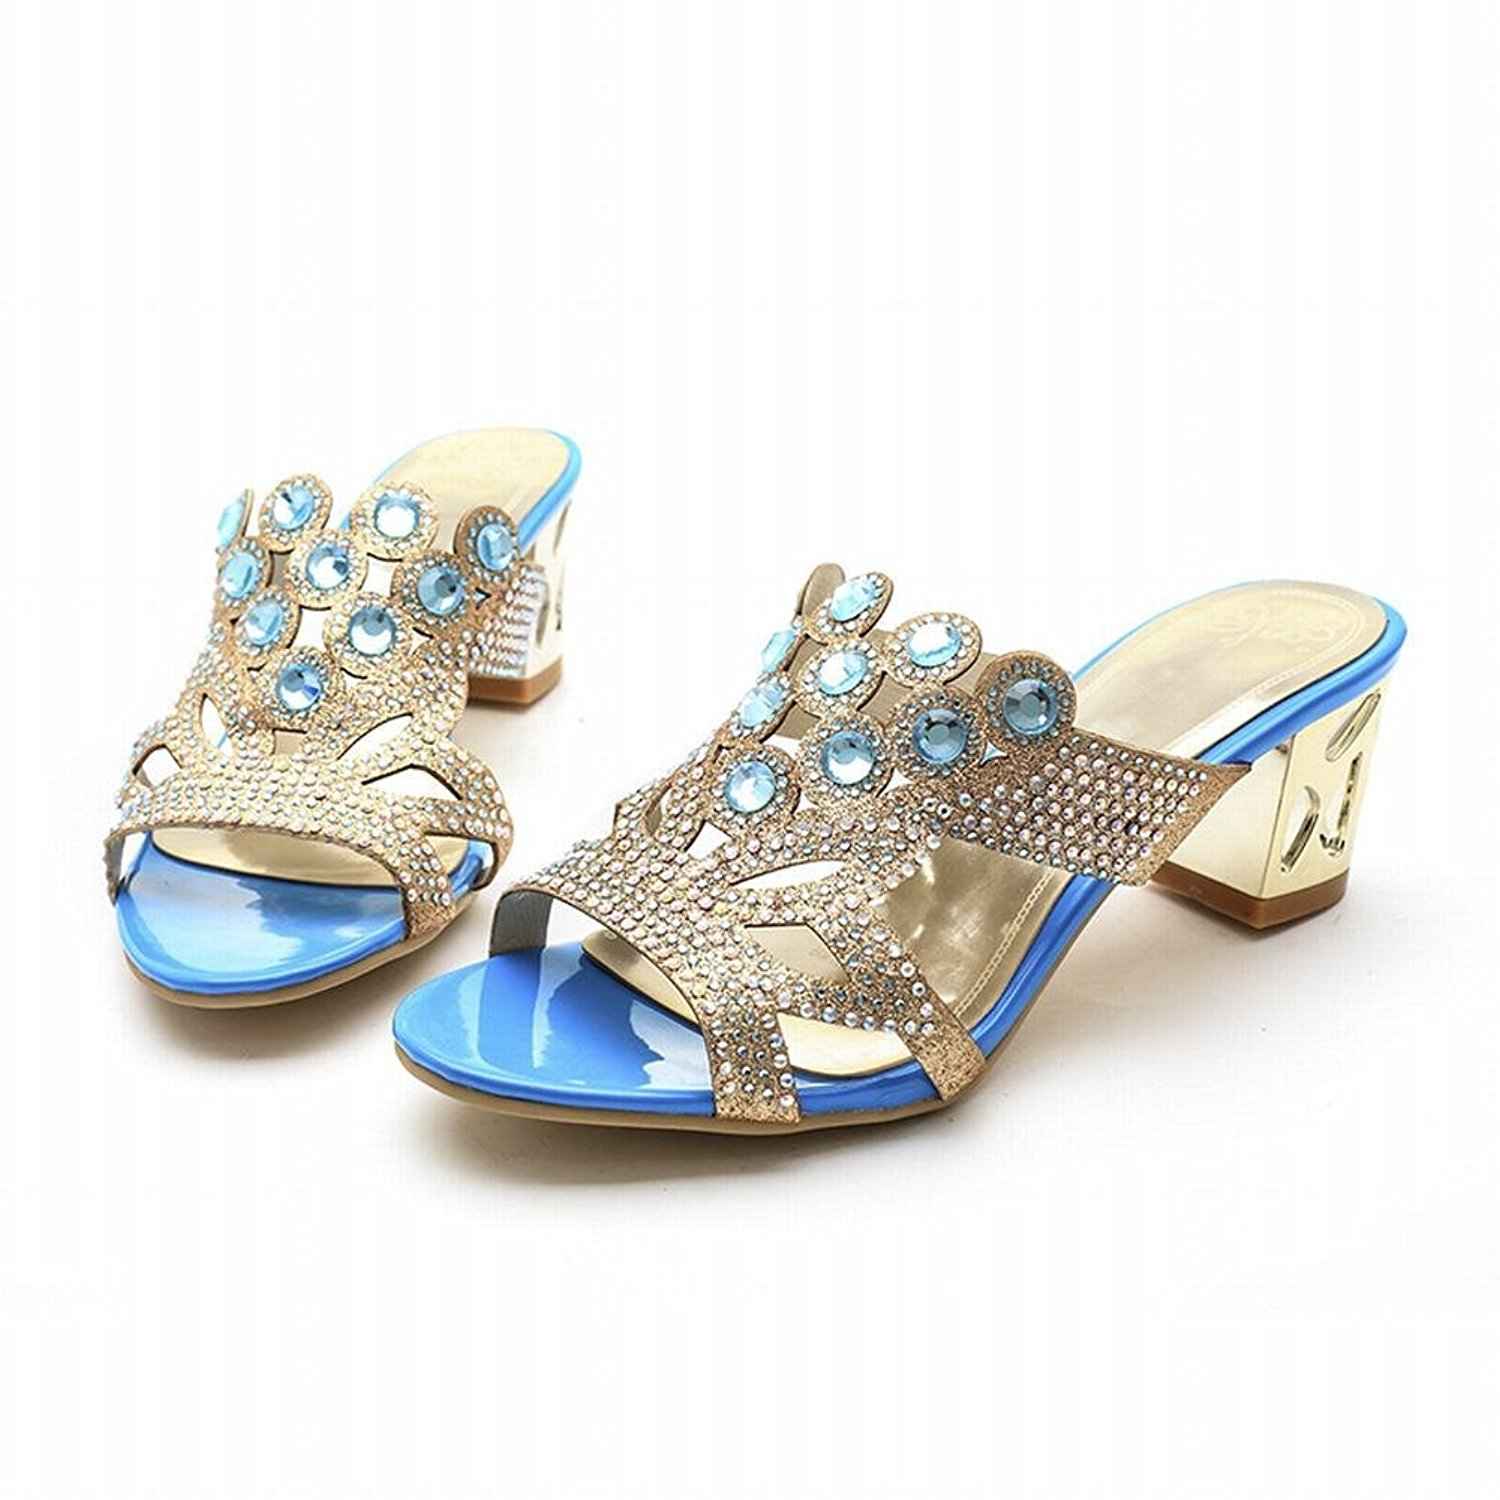 Latasa Women's Fashion Glitter Rhinestones Studded Open-toe Slides Sandals